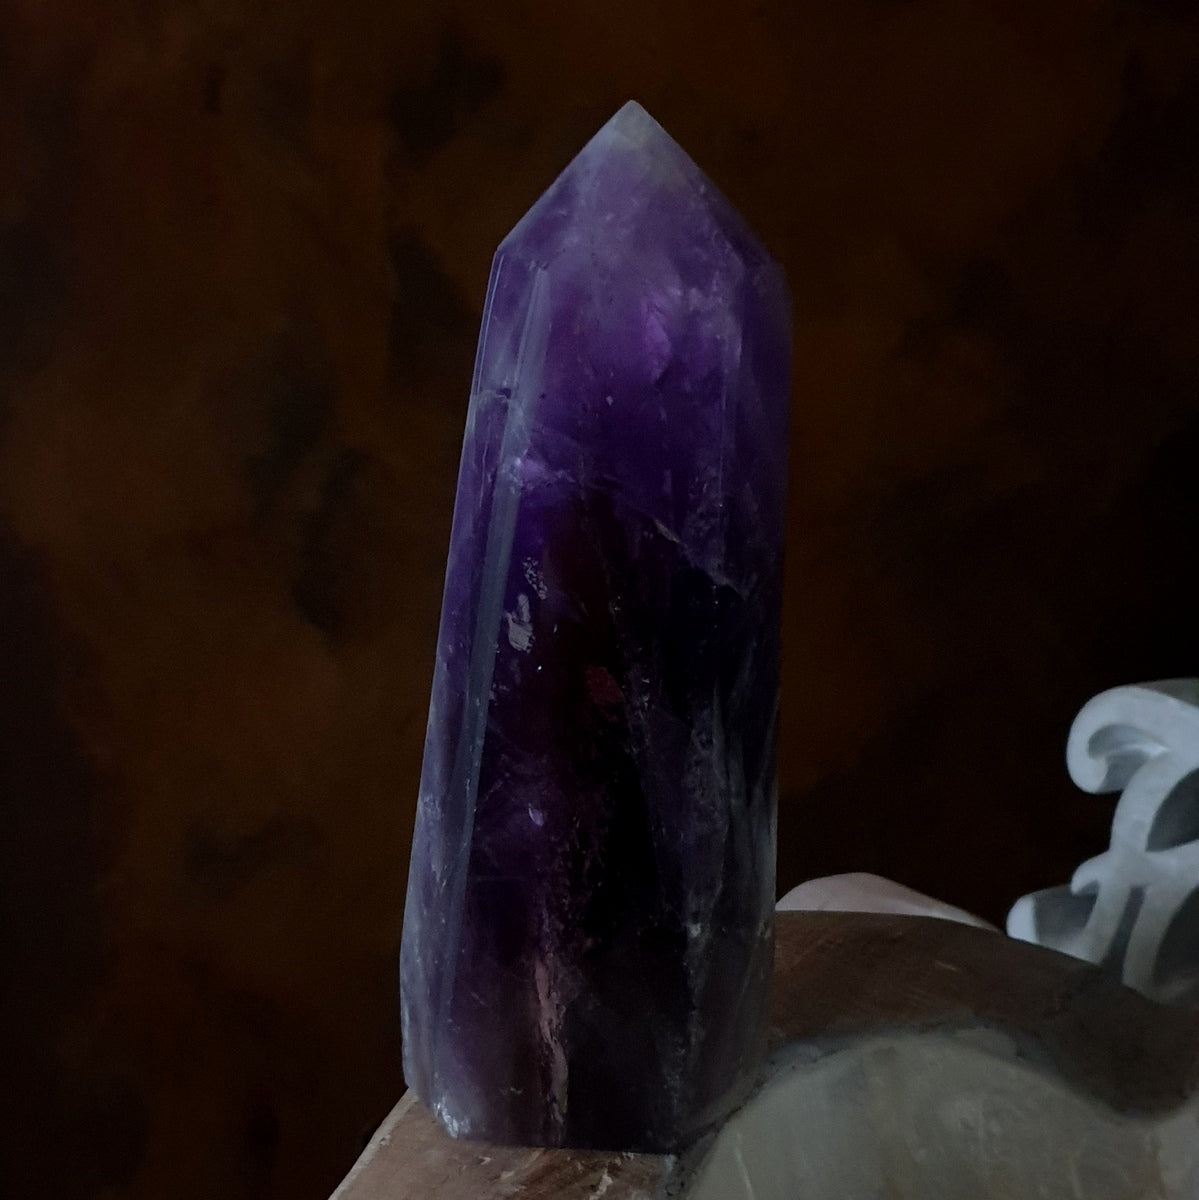 Amethyst Smoky Citrine Polished Large Point - Shop Now at Illiom Crystals - Afterpay Available